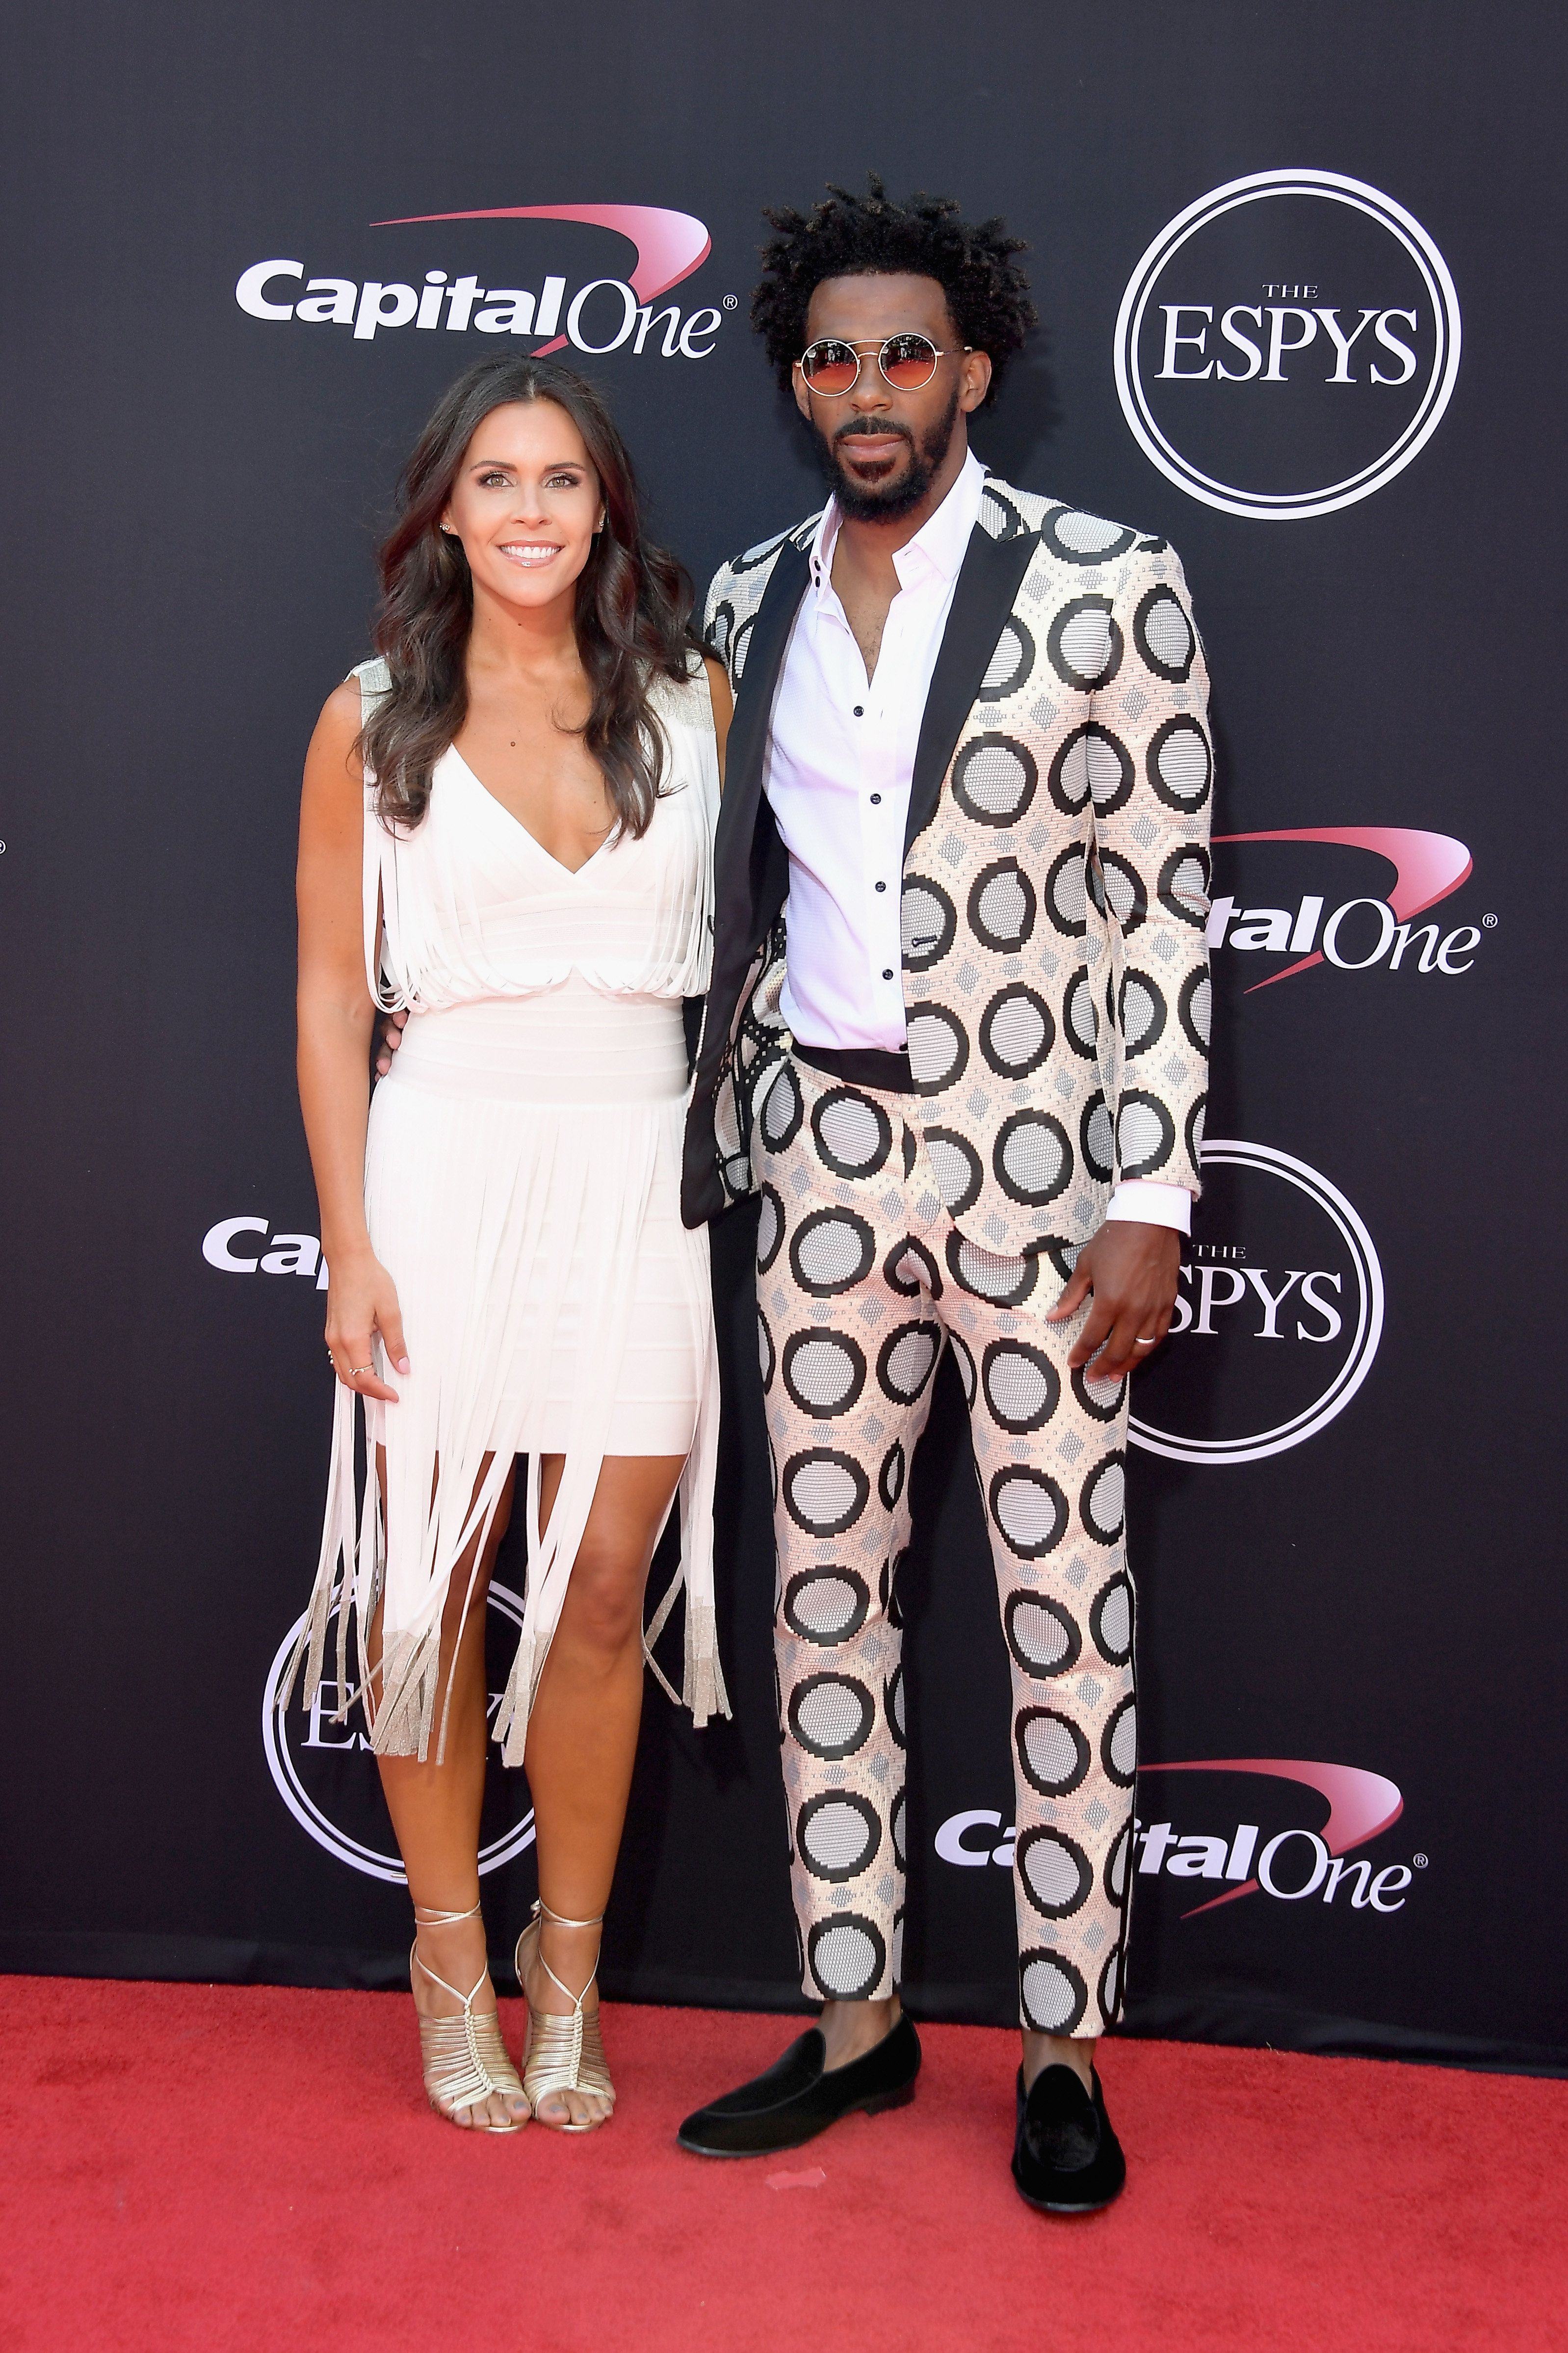 LOS ANGELES, CA - JULY 12:  NBA player Mike Conley Jr. (R) and Mary Conley attend The 2017 ESPYS at Microsoft Theater on July 12, 2017 in Los Angeles, California.  (Photo by Matt Winkelmeyer/Getty Images)